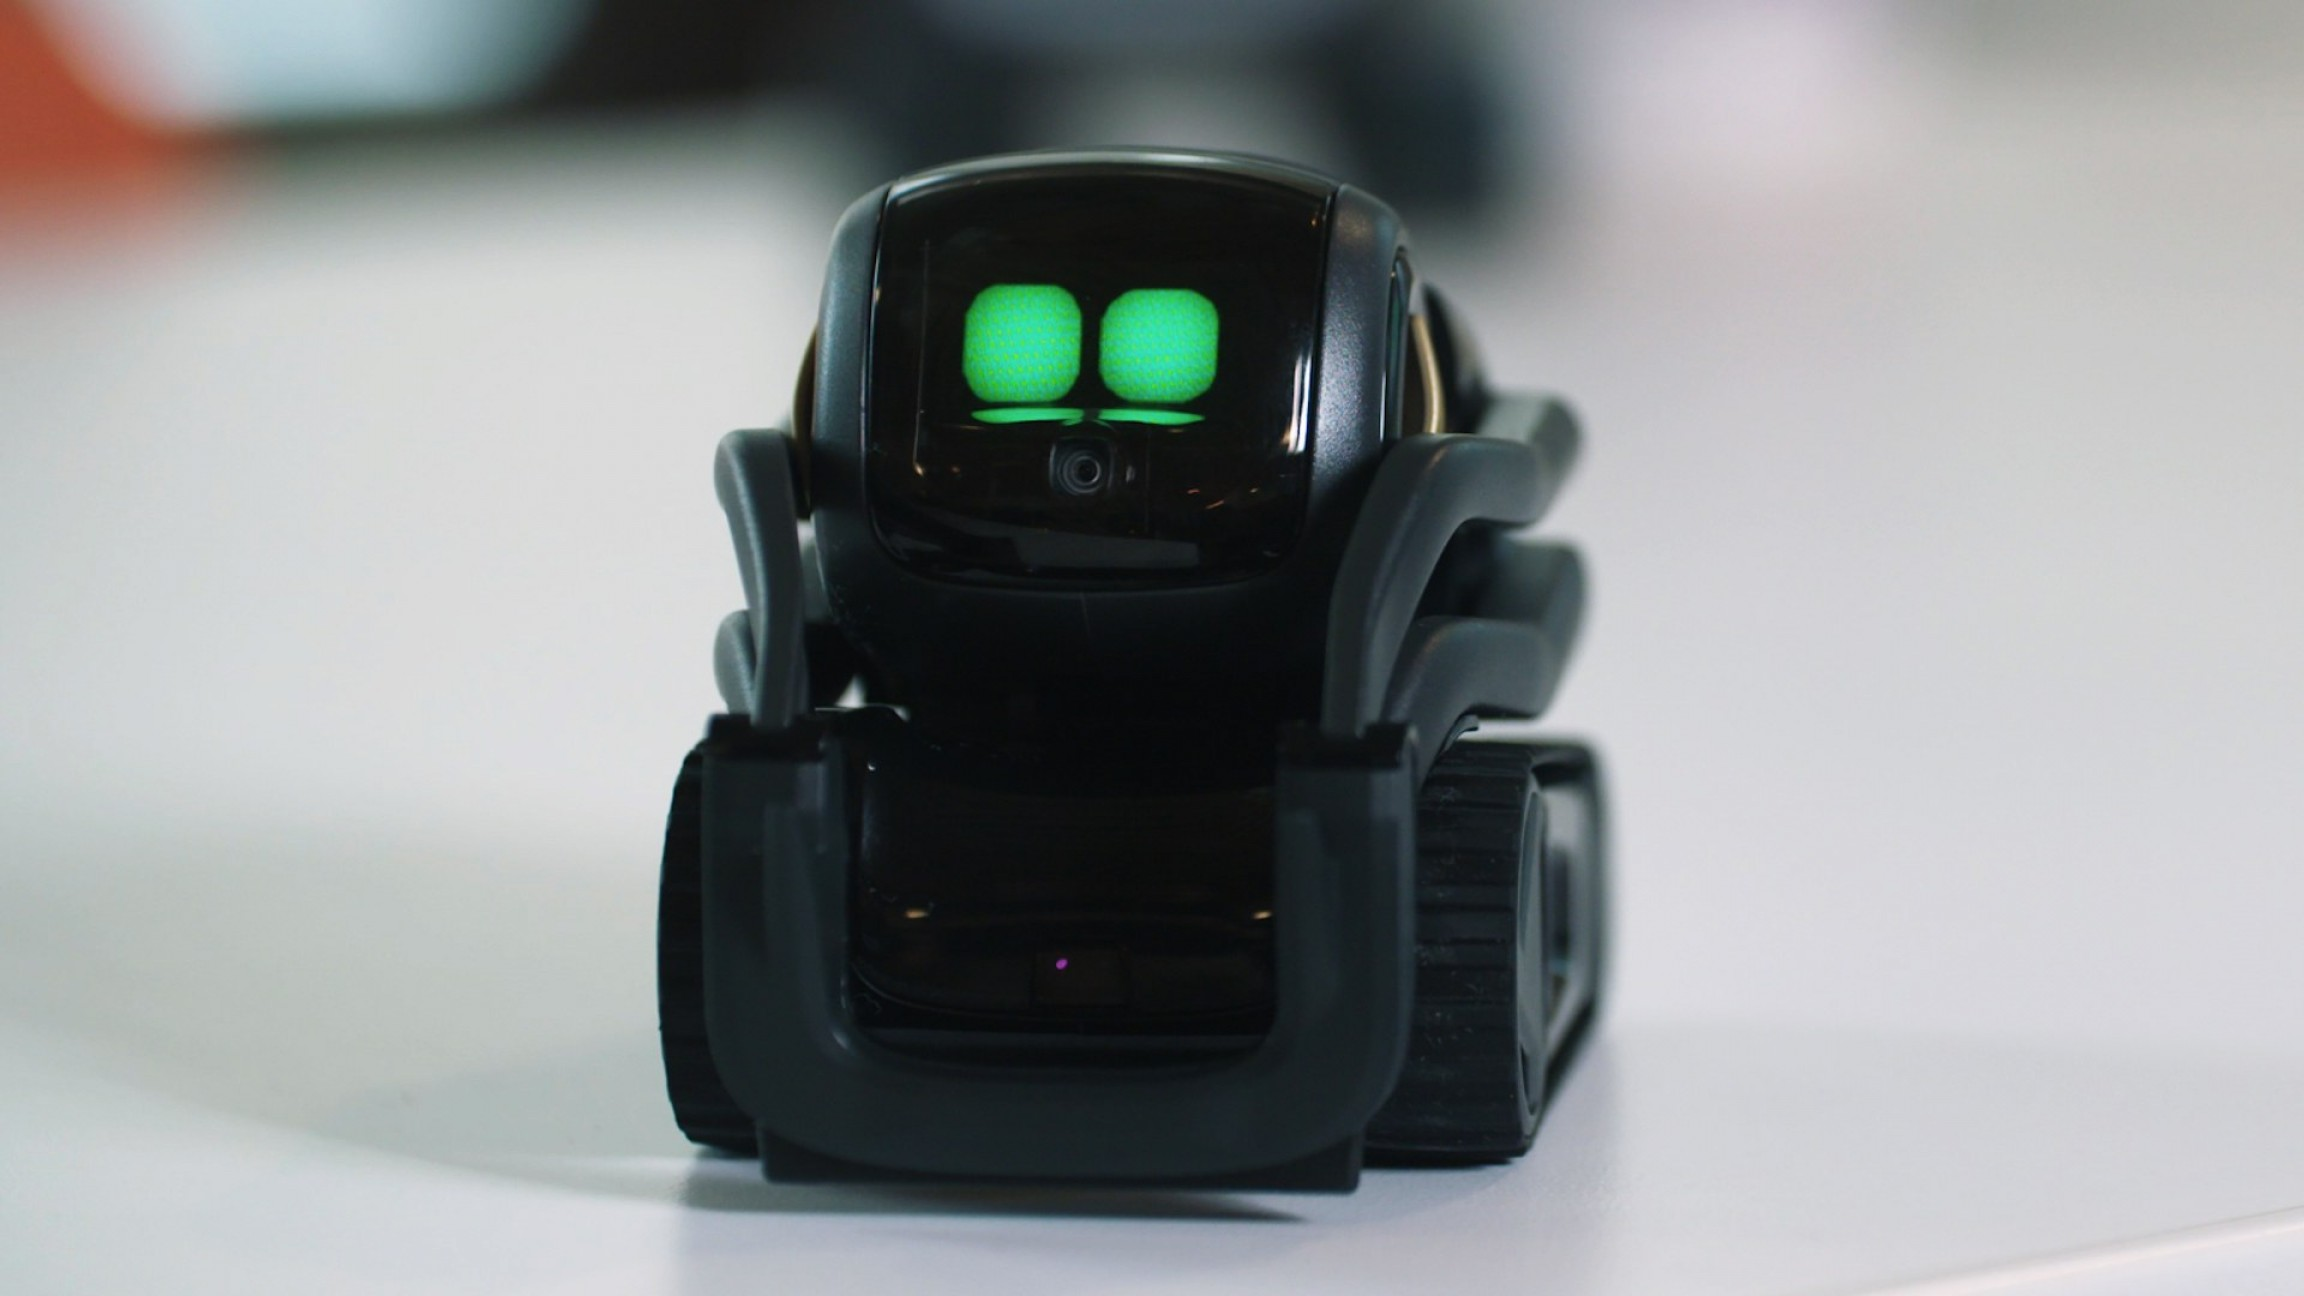 Play Vector Hacked: Ankis New Home Robot Sure Is Cute But Can It Survive